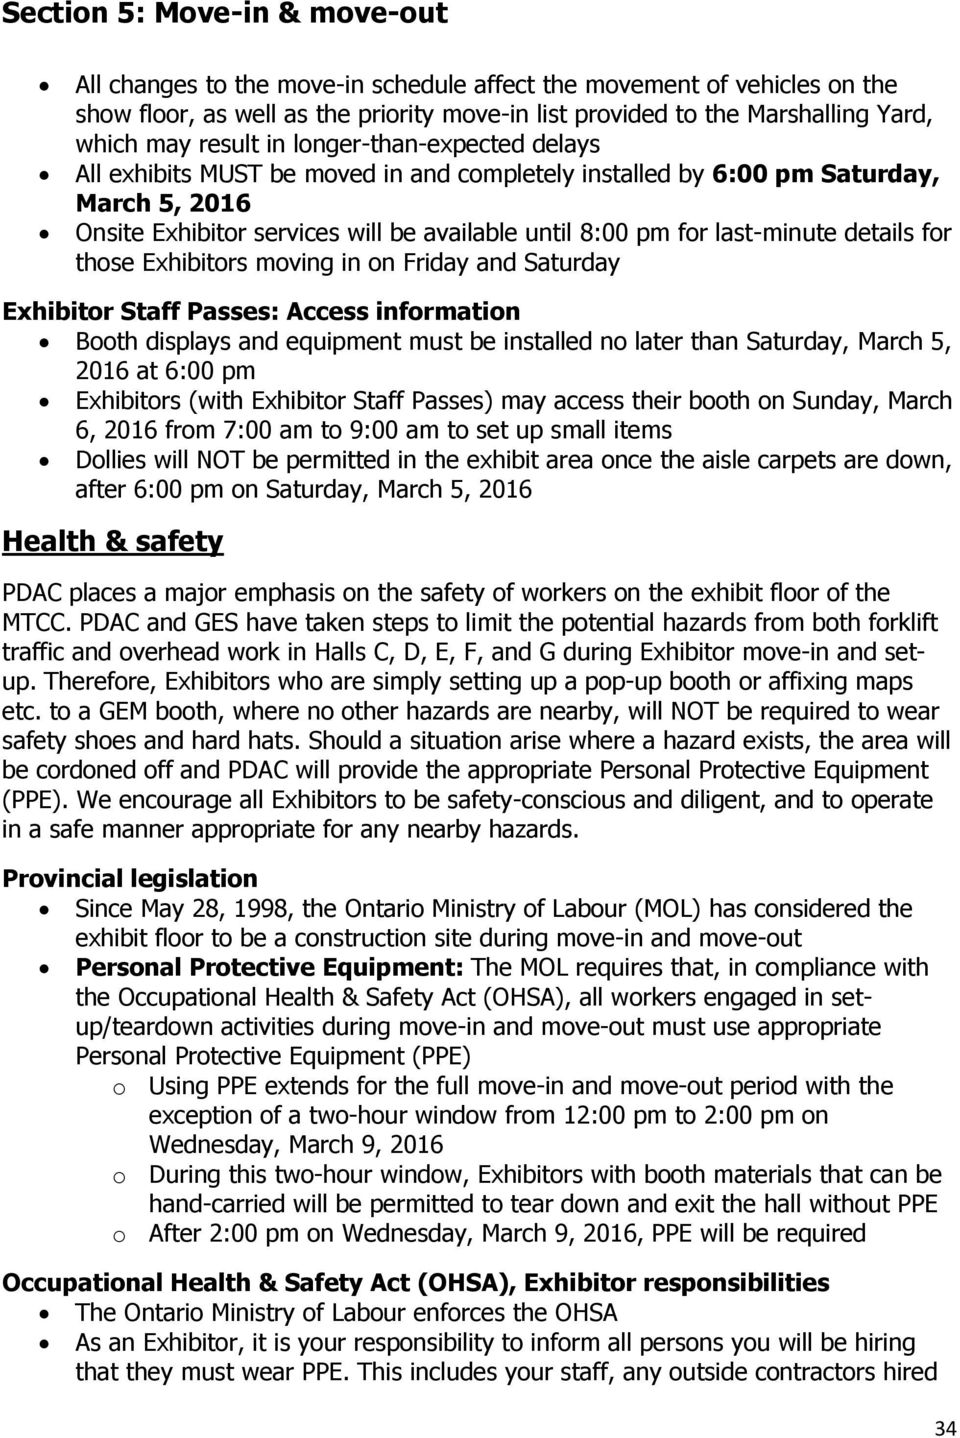 moving in on Friday and Saturday Exhibitor Staff Passes: Access information Booth displays and equipment must be installed no later than Saturday, March 5, 2016 at 6:00 pm Exhibitors (with Exhibitor